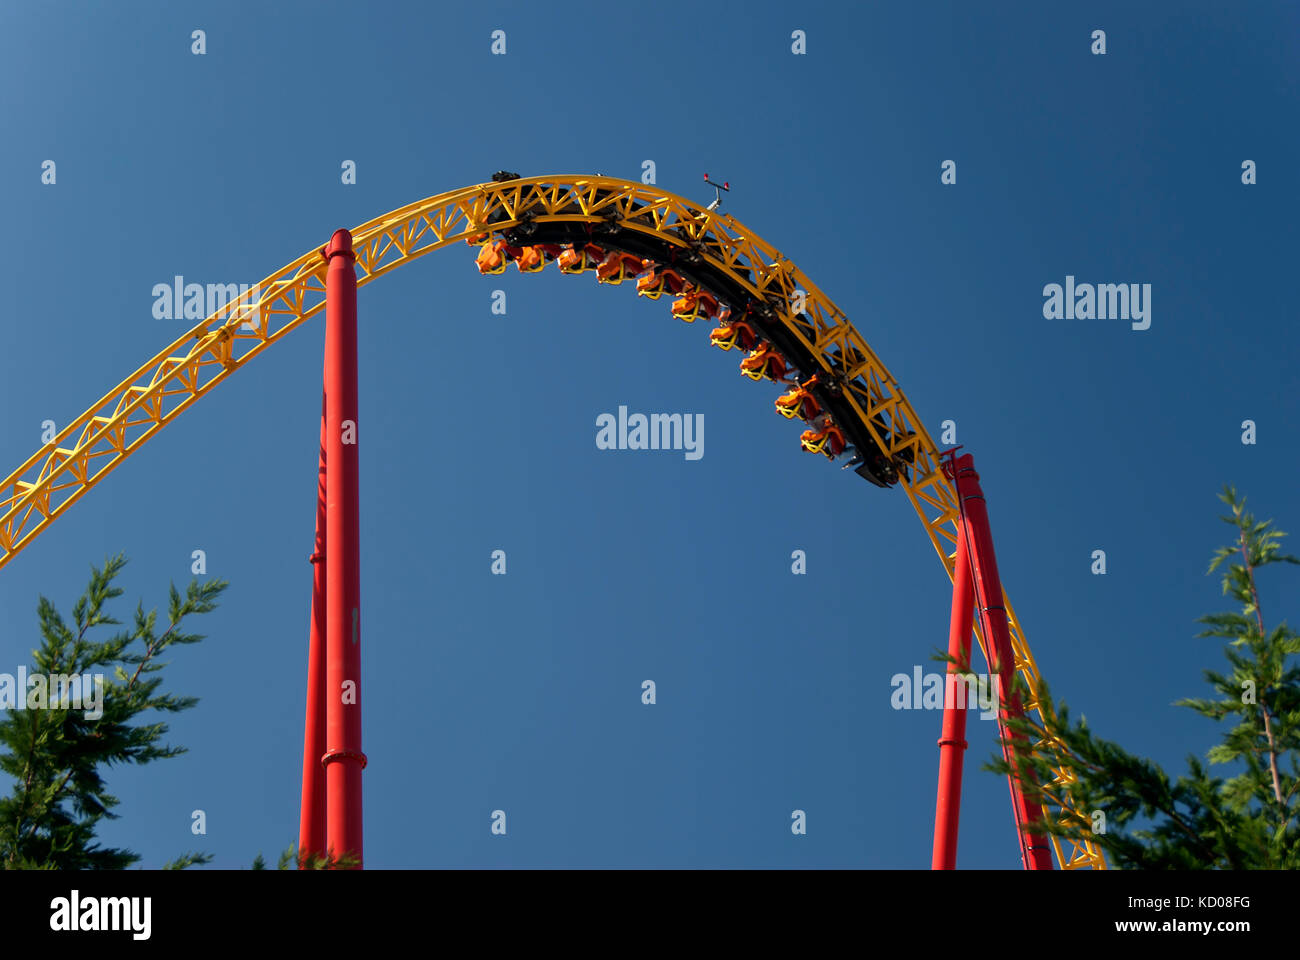 rides and rollercoasters Riding a roller coaster may spark potentially deadly abnormal heart rhythms in people with heart disease, researchers say.